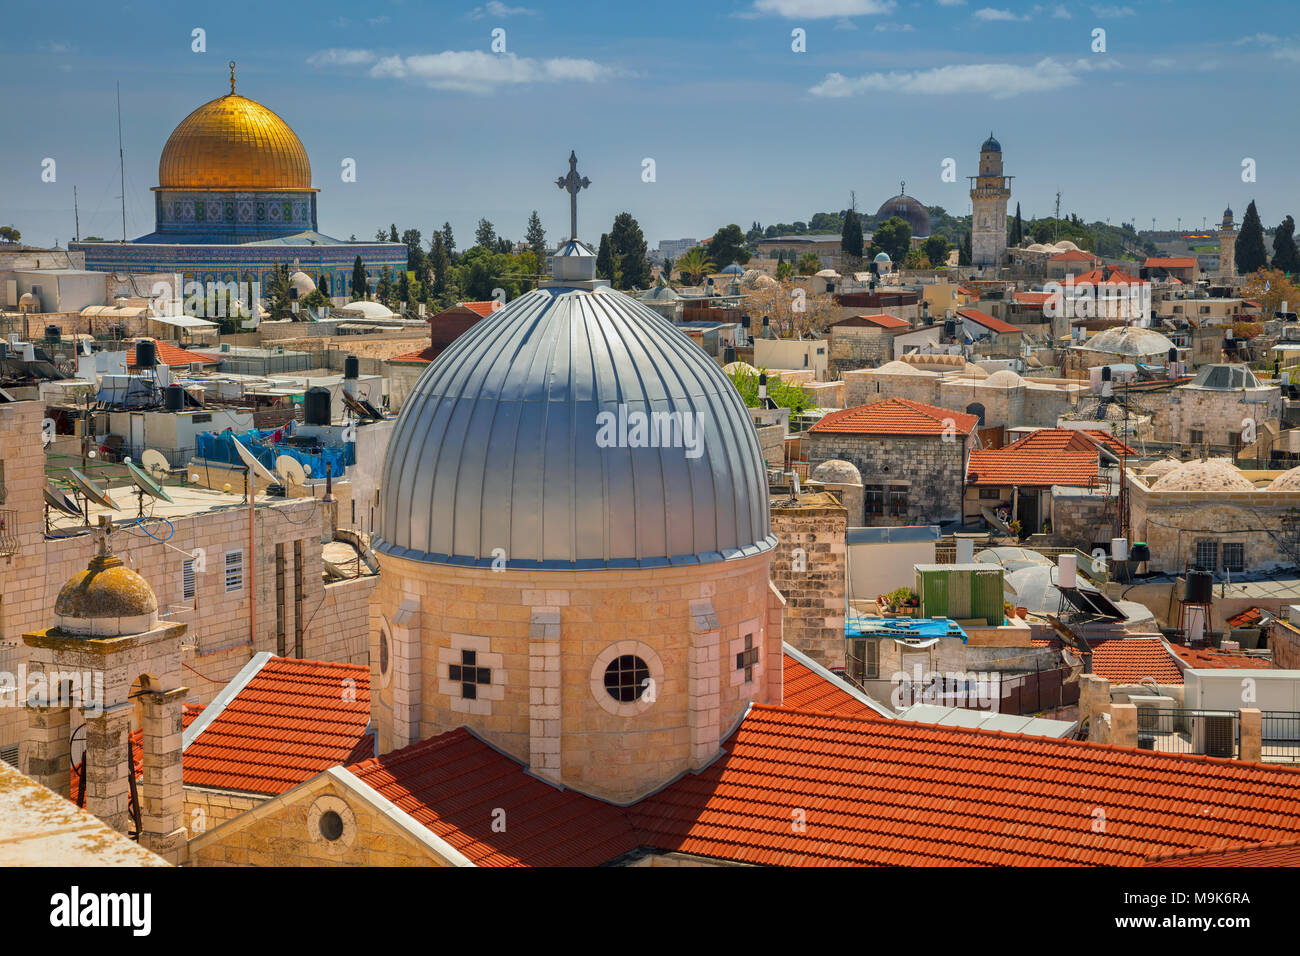 Jerusalem. Cityscape image of old town Jerusalem, Israel with the Church of St. Mary of agony and the Dome of the Rock. - Stock Image